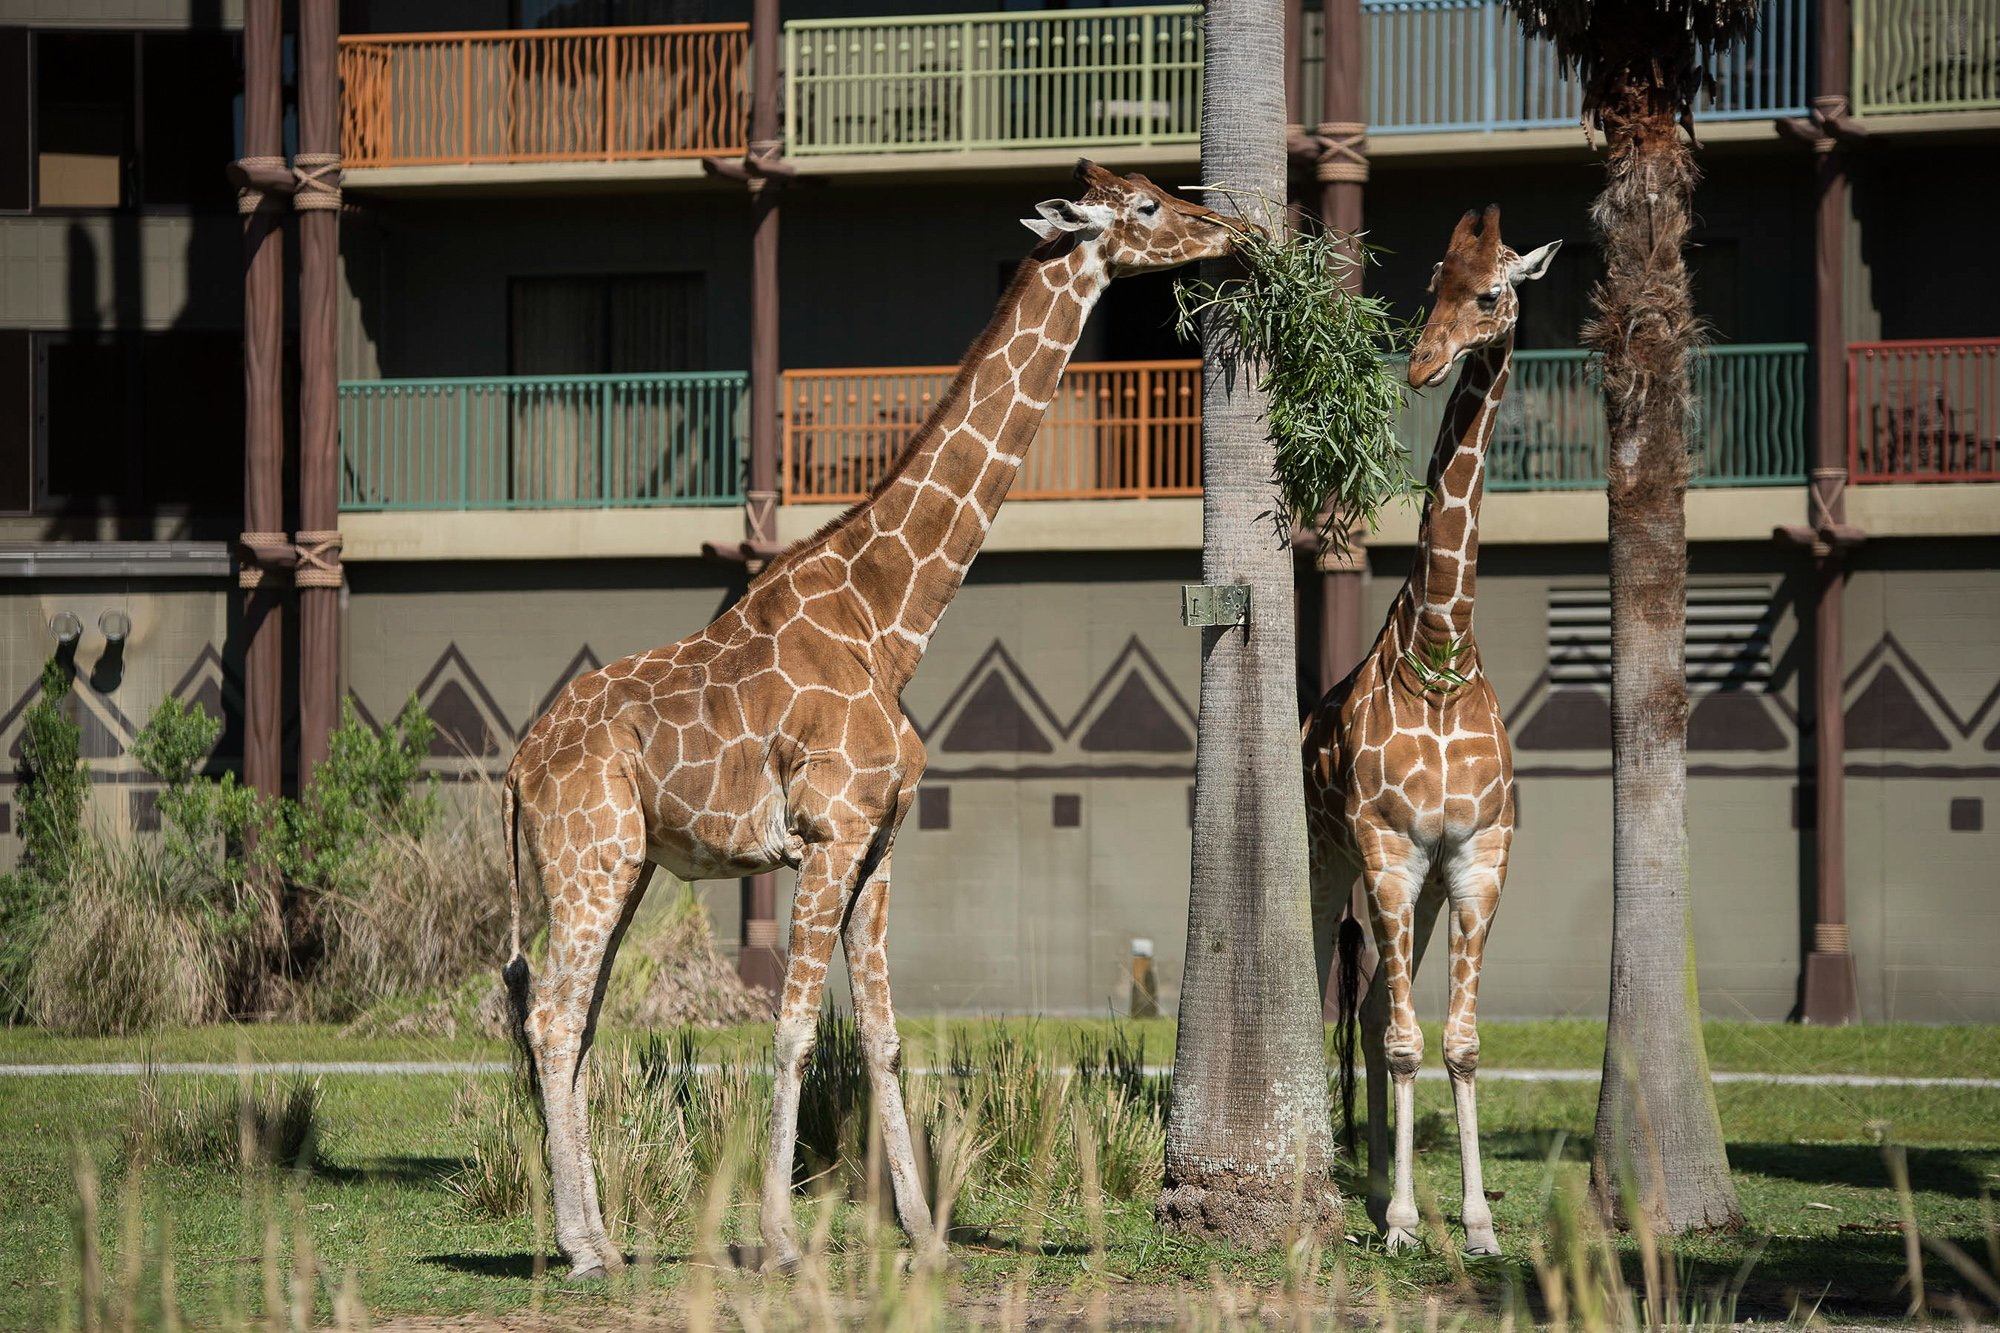 Giraffes wandering the grounds at Disney's Animal Kingdom Lodge